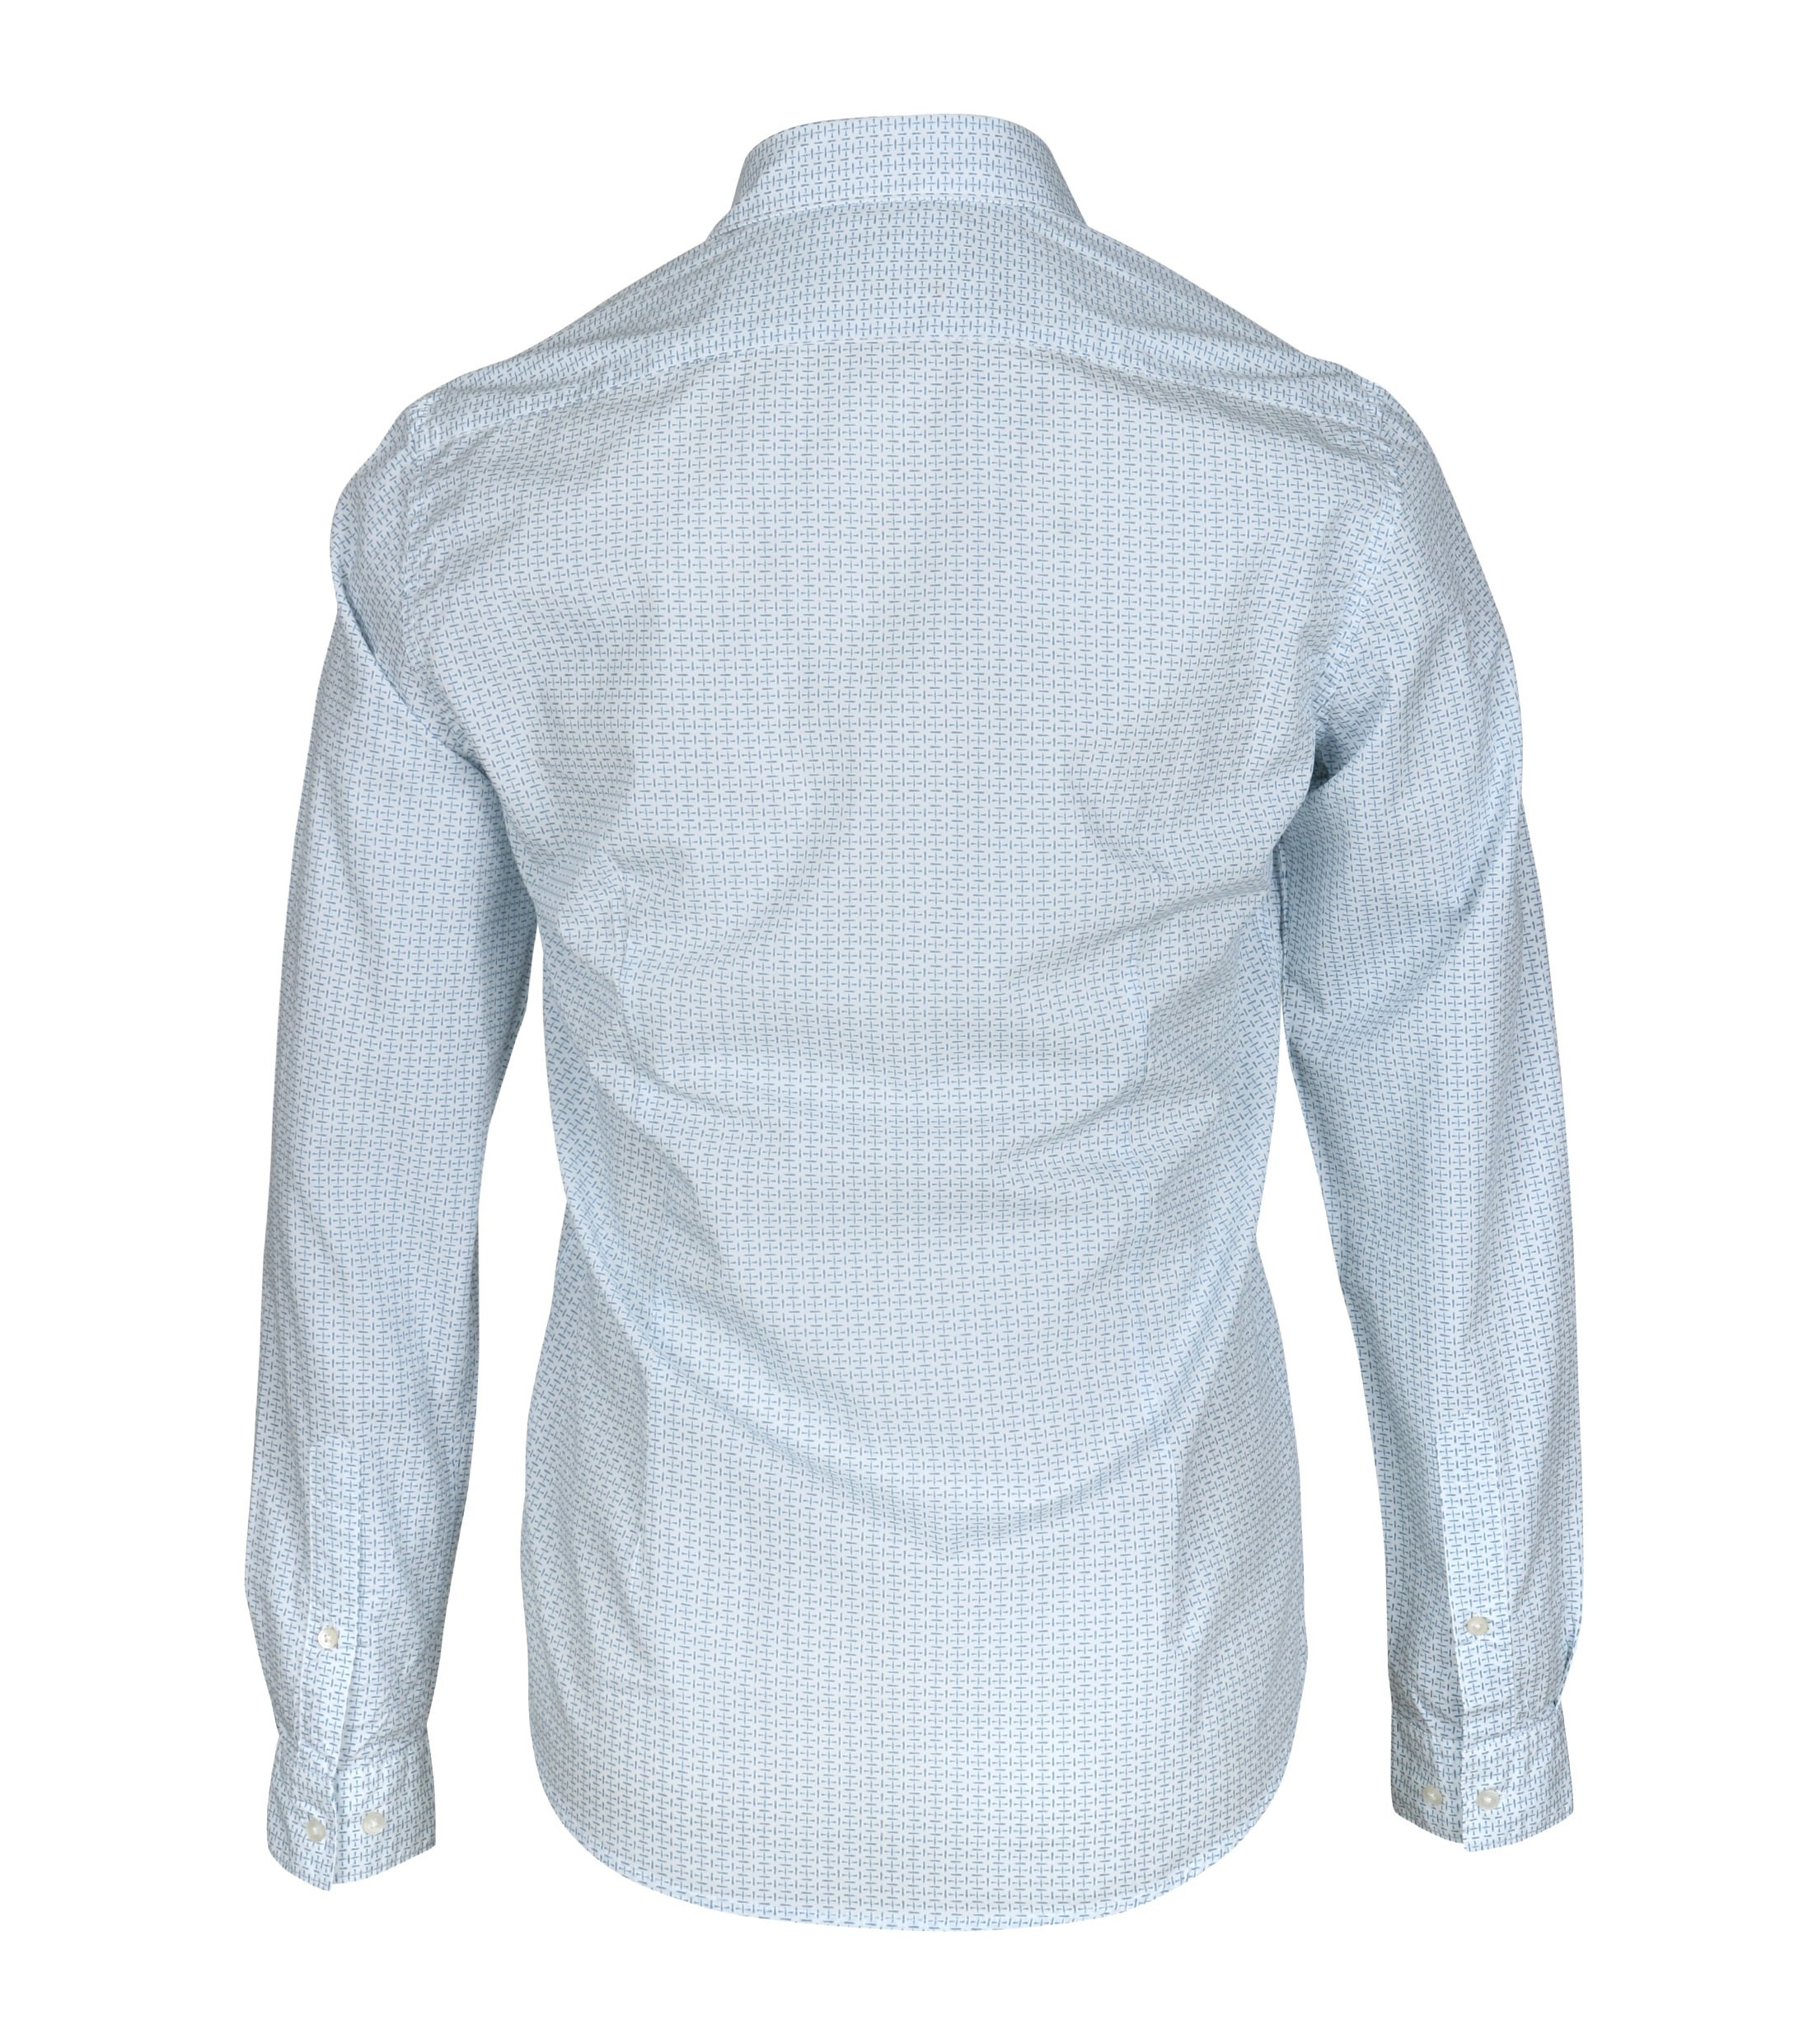 New In Town Shirt White Dessin foto 2